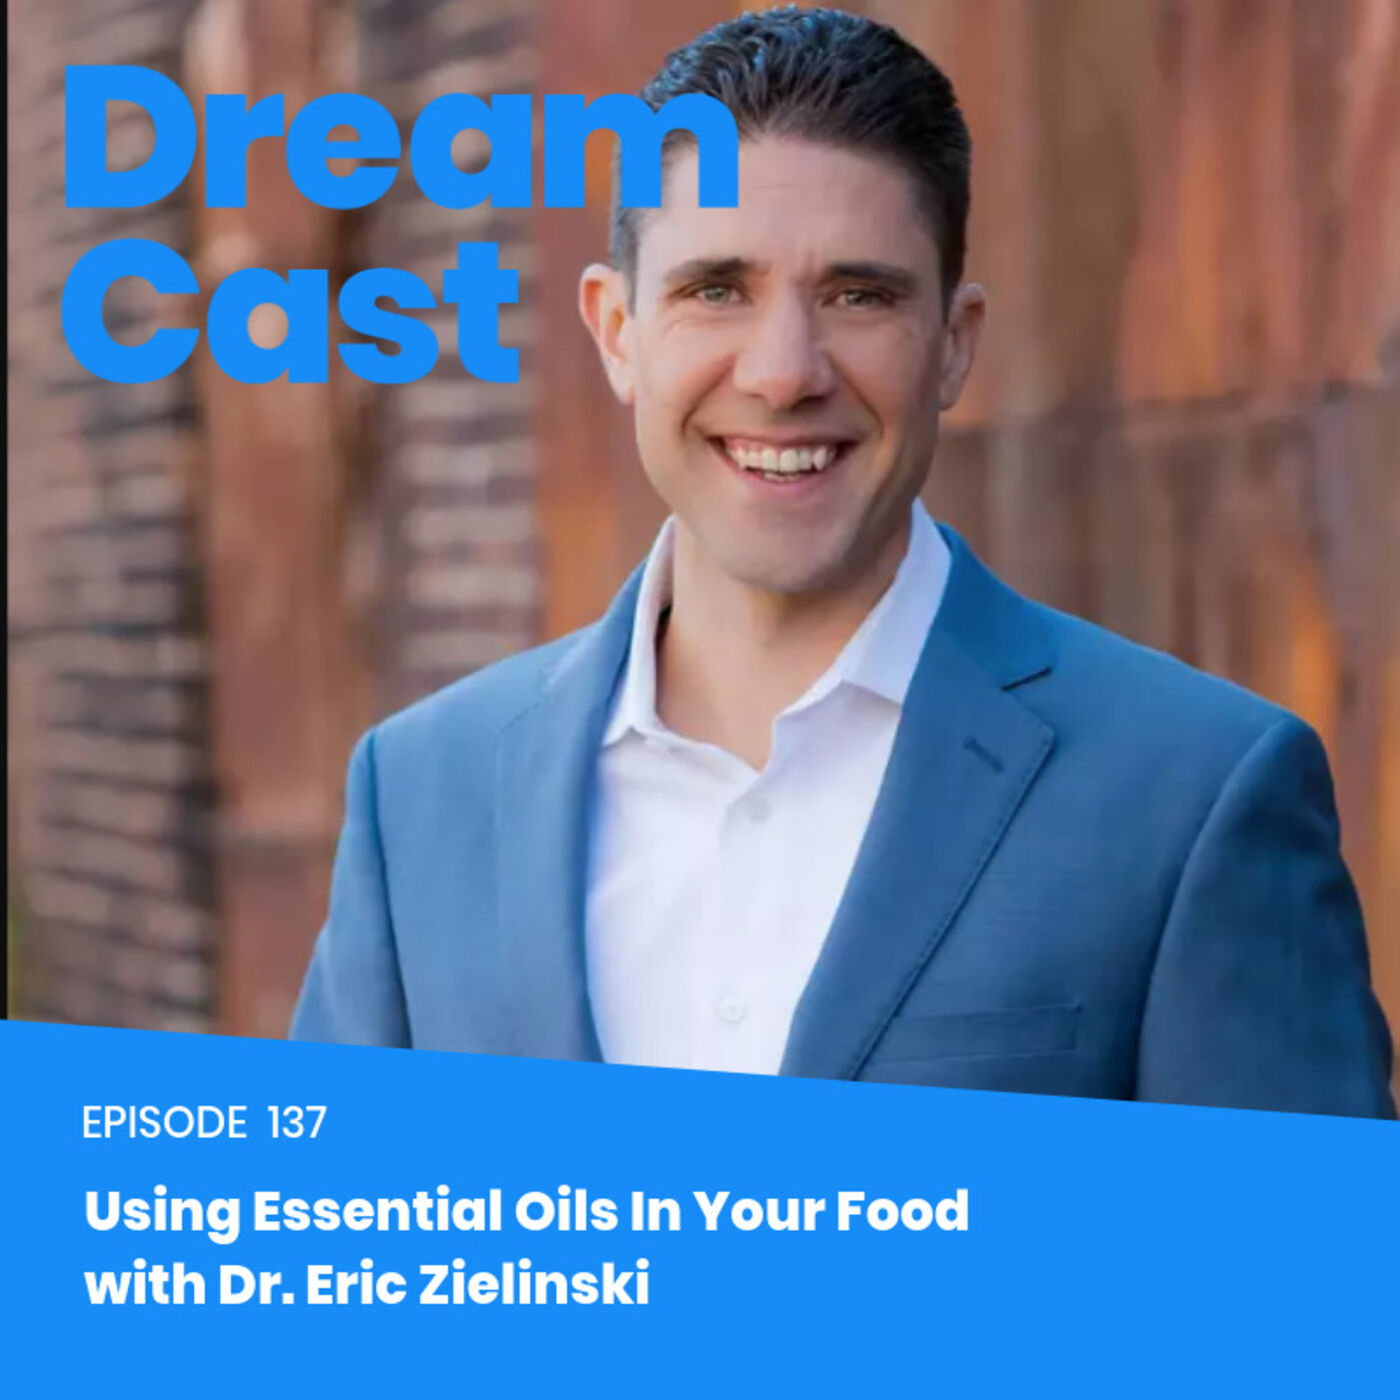 Episode 137 - Using Essential Oils in Your Food With Dr. Eric Zielinski